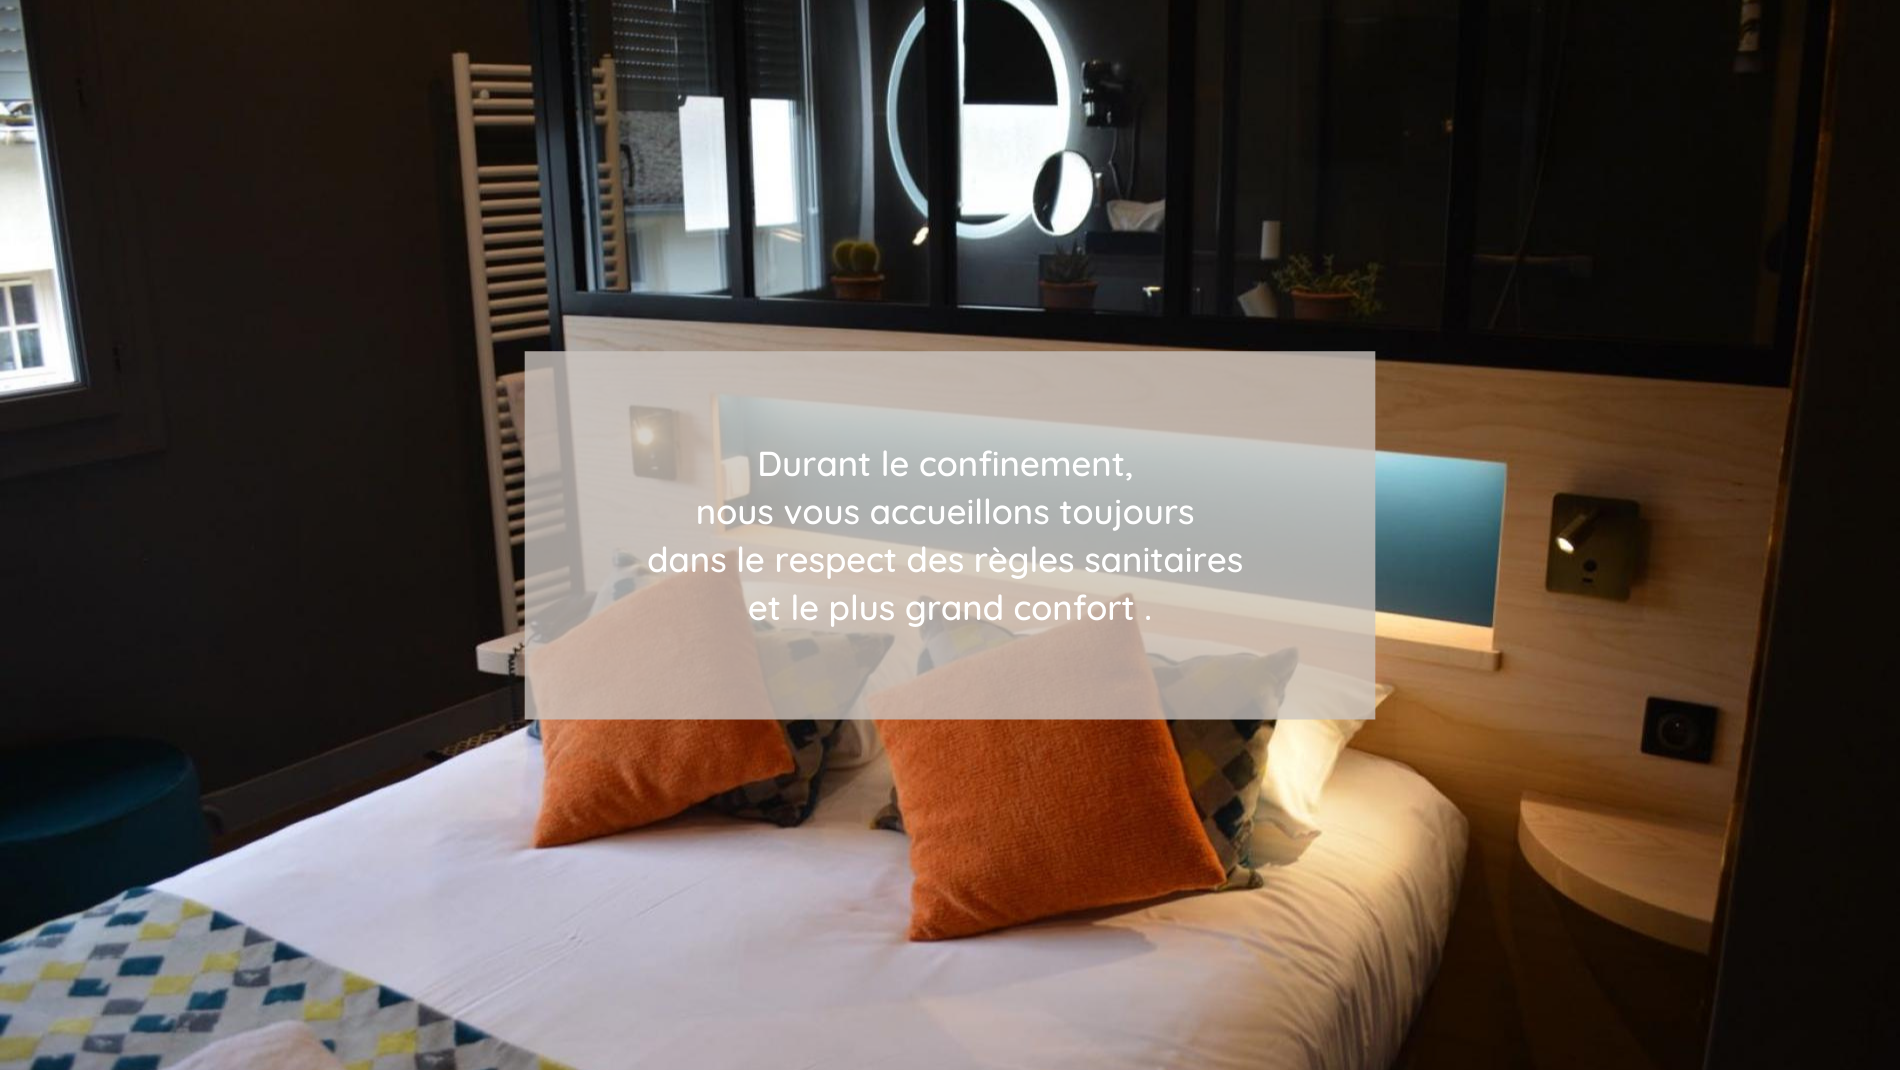 Les Glycines hotel** in Melle, a calm and quiet place